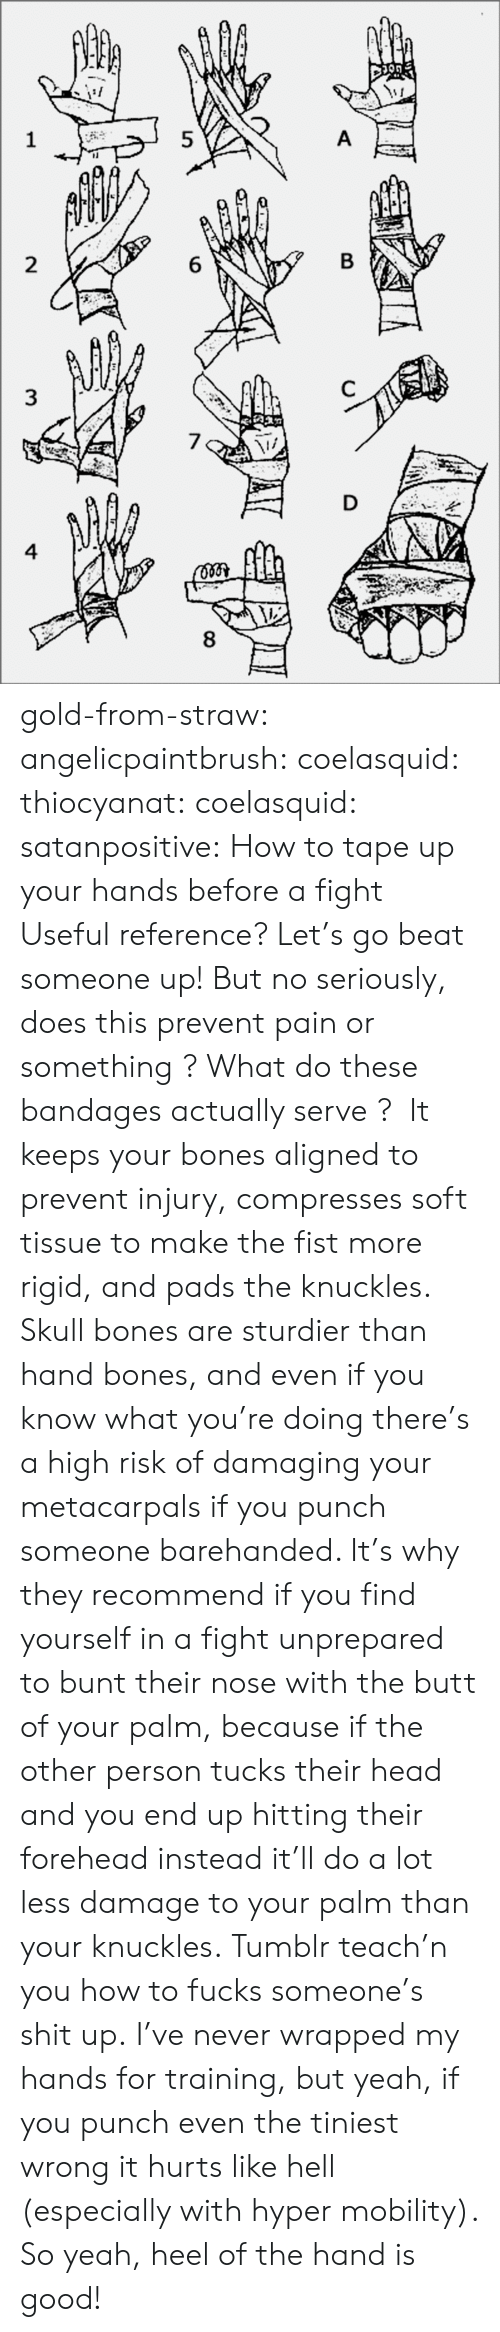 heel: 8  6  5  3  4 gold-from-straw:  angelicpaintbrush:  coelasquid:  thiocyanat:  coelasquid:  satanpositive:  How to tape up your hands before a fight  Useful reference?  Let's go beat someone up! But no seriously, does this prevent pain or something ? What do these bandages actually serve ?   It keeps your bones aligned to prevent injury, compresses soft tissue to make the fist more rigid, and pads the knuckles. Skull bones are sturdier than hand bones, and even if you know what you're doing there's a high risk of damaging your metacarpals if you punch someone barehanded. It's why they recommend if you find yourself in a fight unprepared to bunt their nose with the butt of your palm, because if the other person tucks their head and you end up hitting their forehead instead it'll do a lot less damage to your palm than your knuckles.  Tumblr teach'n you how to fucks someone's shit up.   I've never wrapped my hands for training, but yeah, if you punch even the tiniest wrong it hurts like hell (especially with hyper mobility). So yeah, heel of the hand is good!